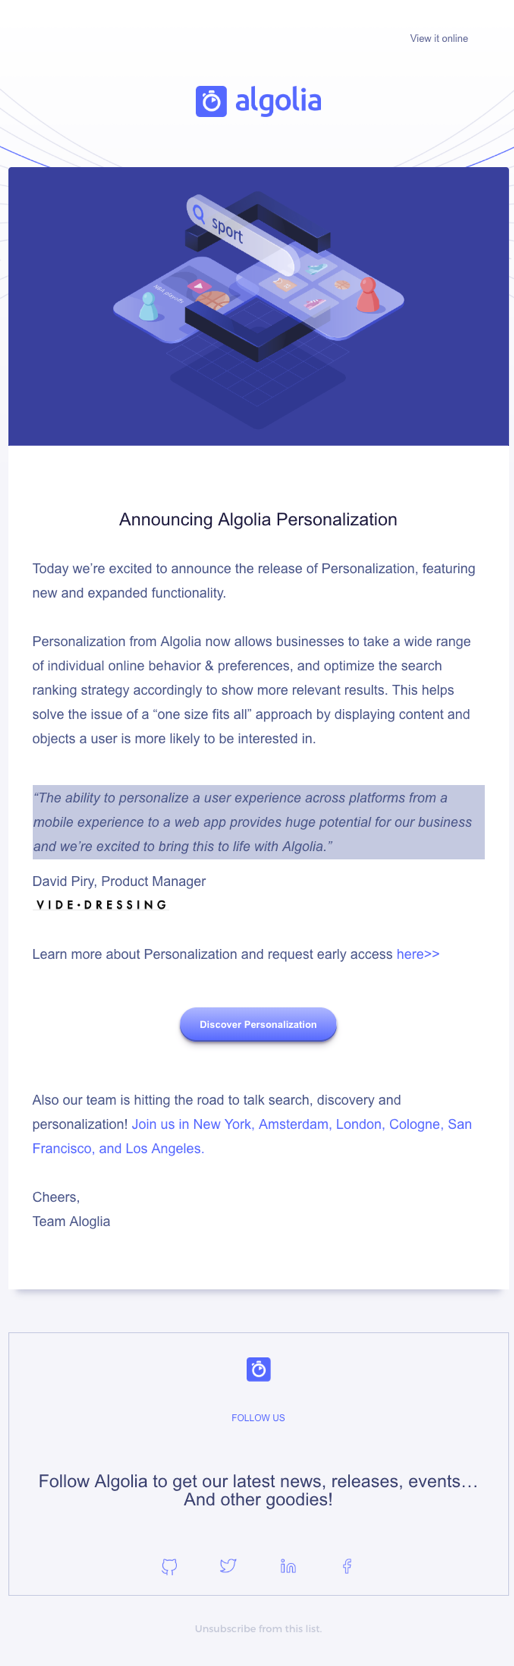 Algolia 3d isometric design in email.